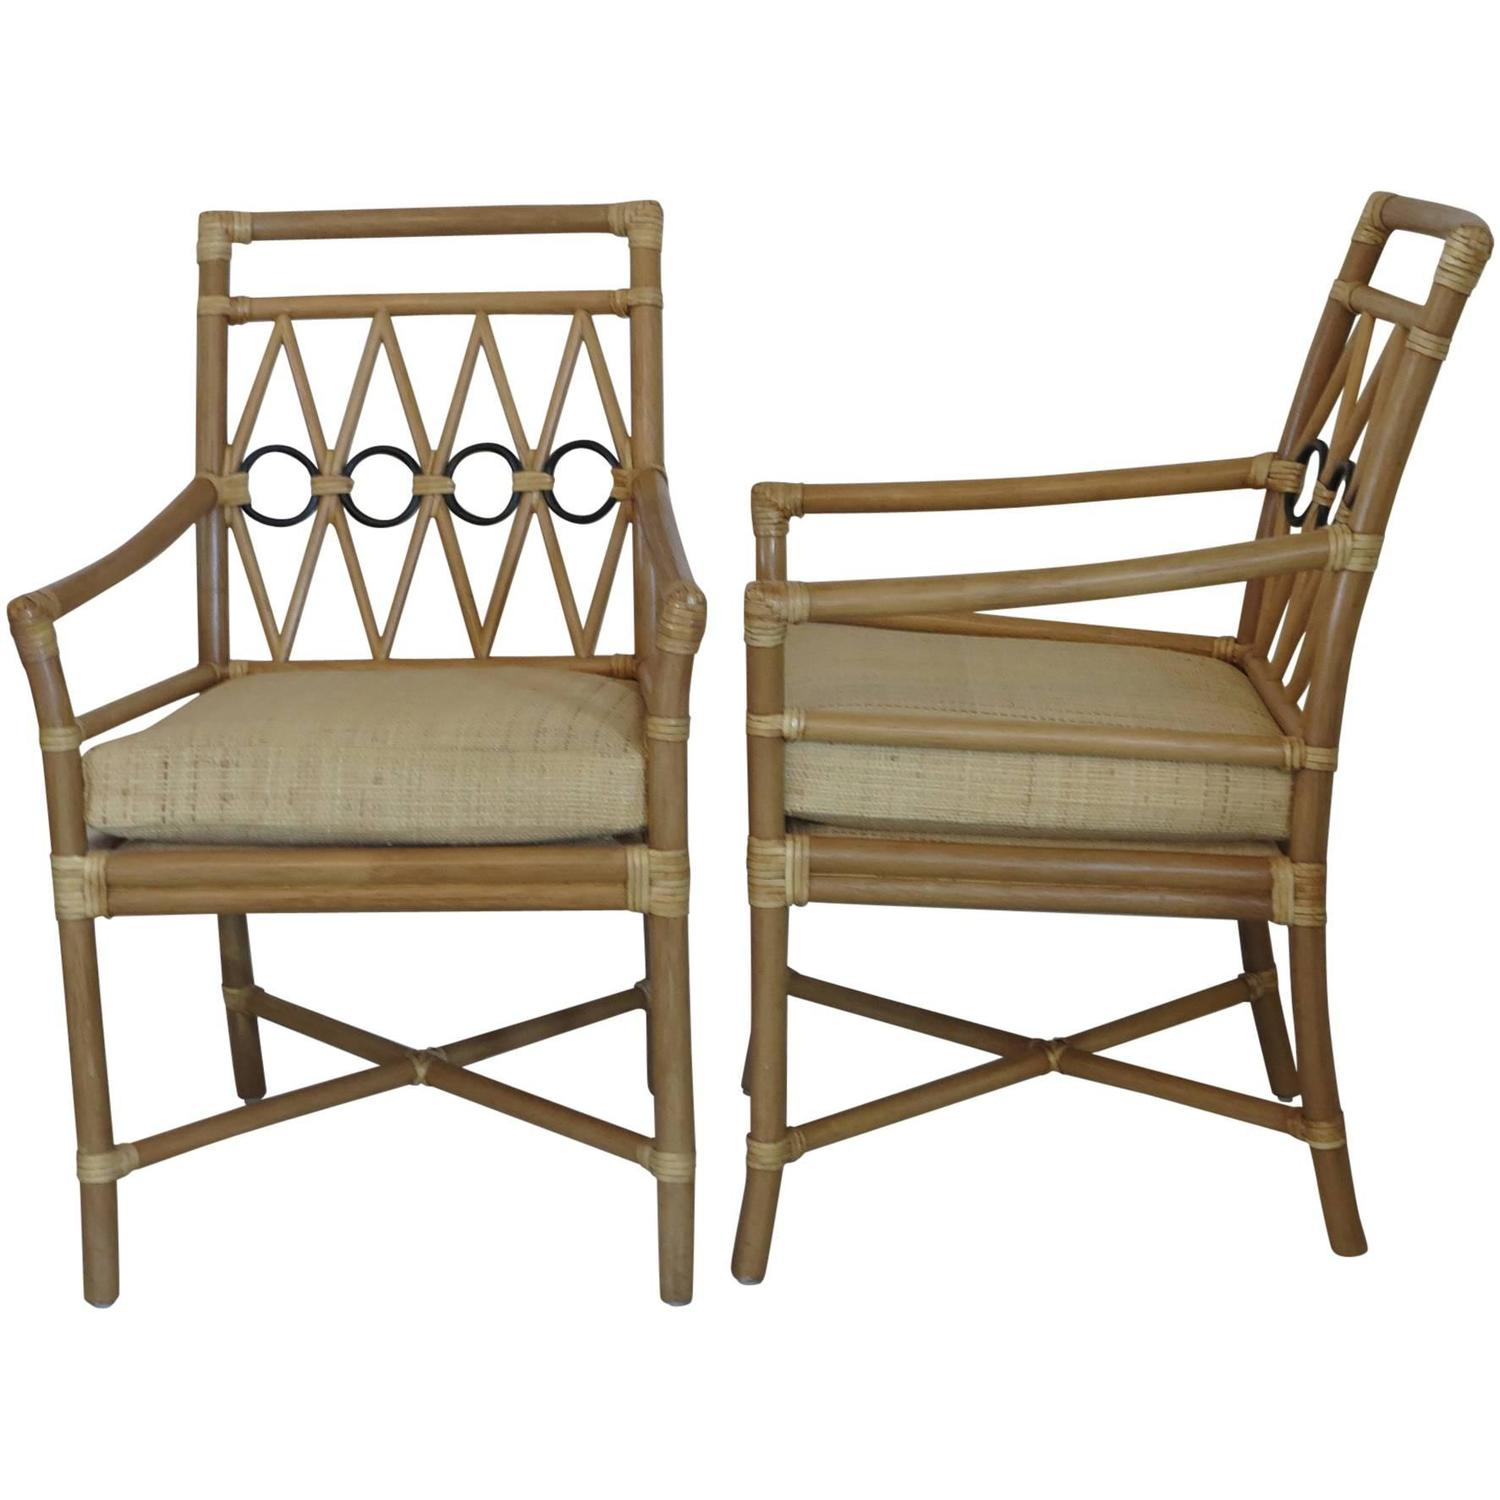 ficks reed chair outdoor papasan armchairs with raffia cushion covers at 1stdibs